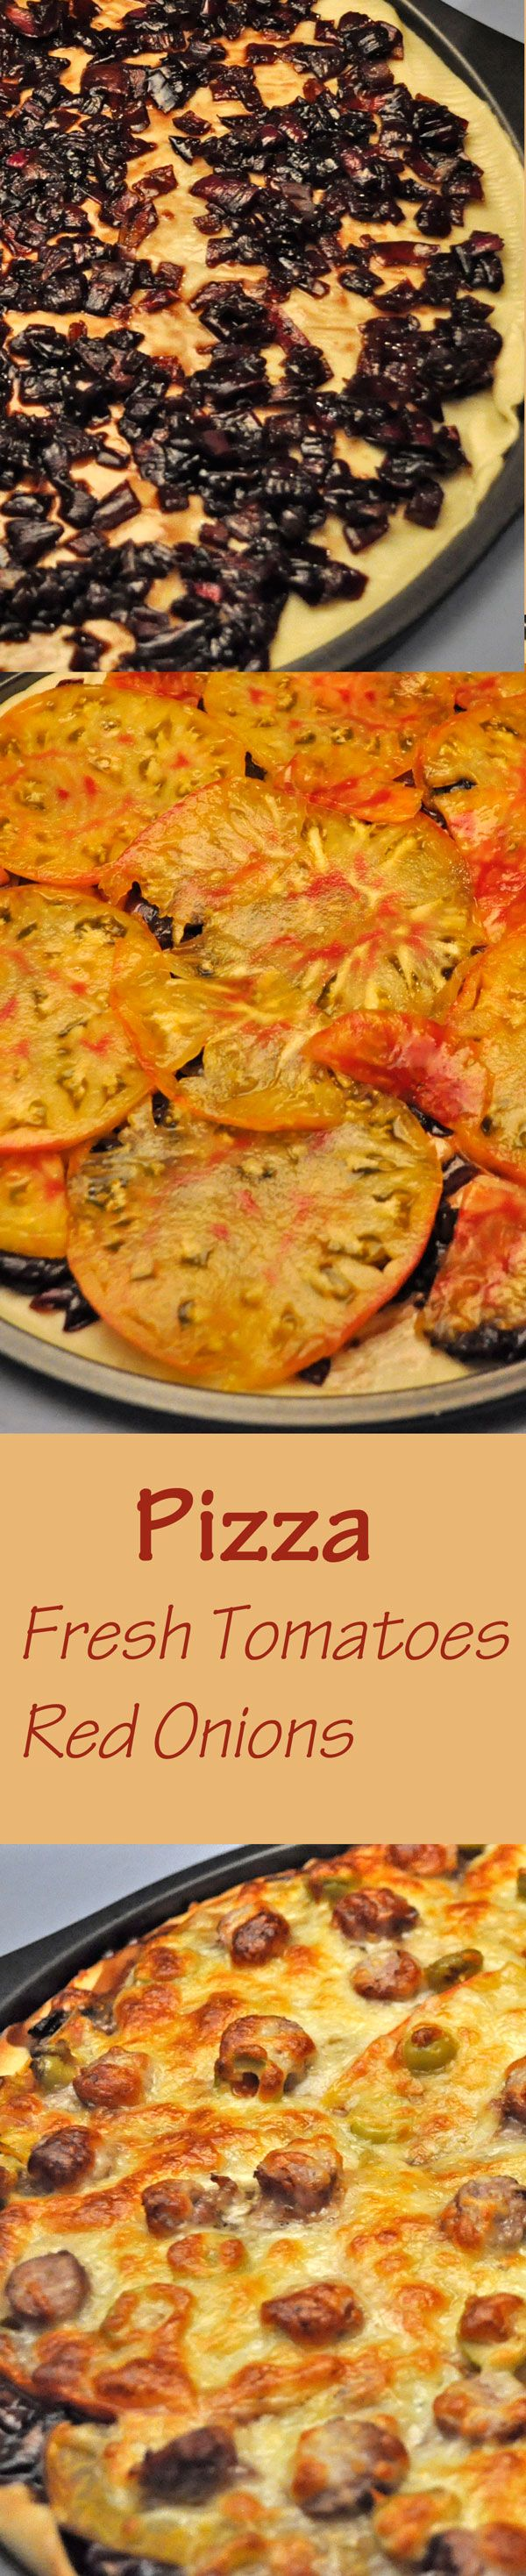 Caramelized Red Onions and thinly sliced Fresh Tomatoes make this easy, gourmet pizza special #pizza #freshtomatopizza #caramelizedredonion